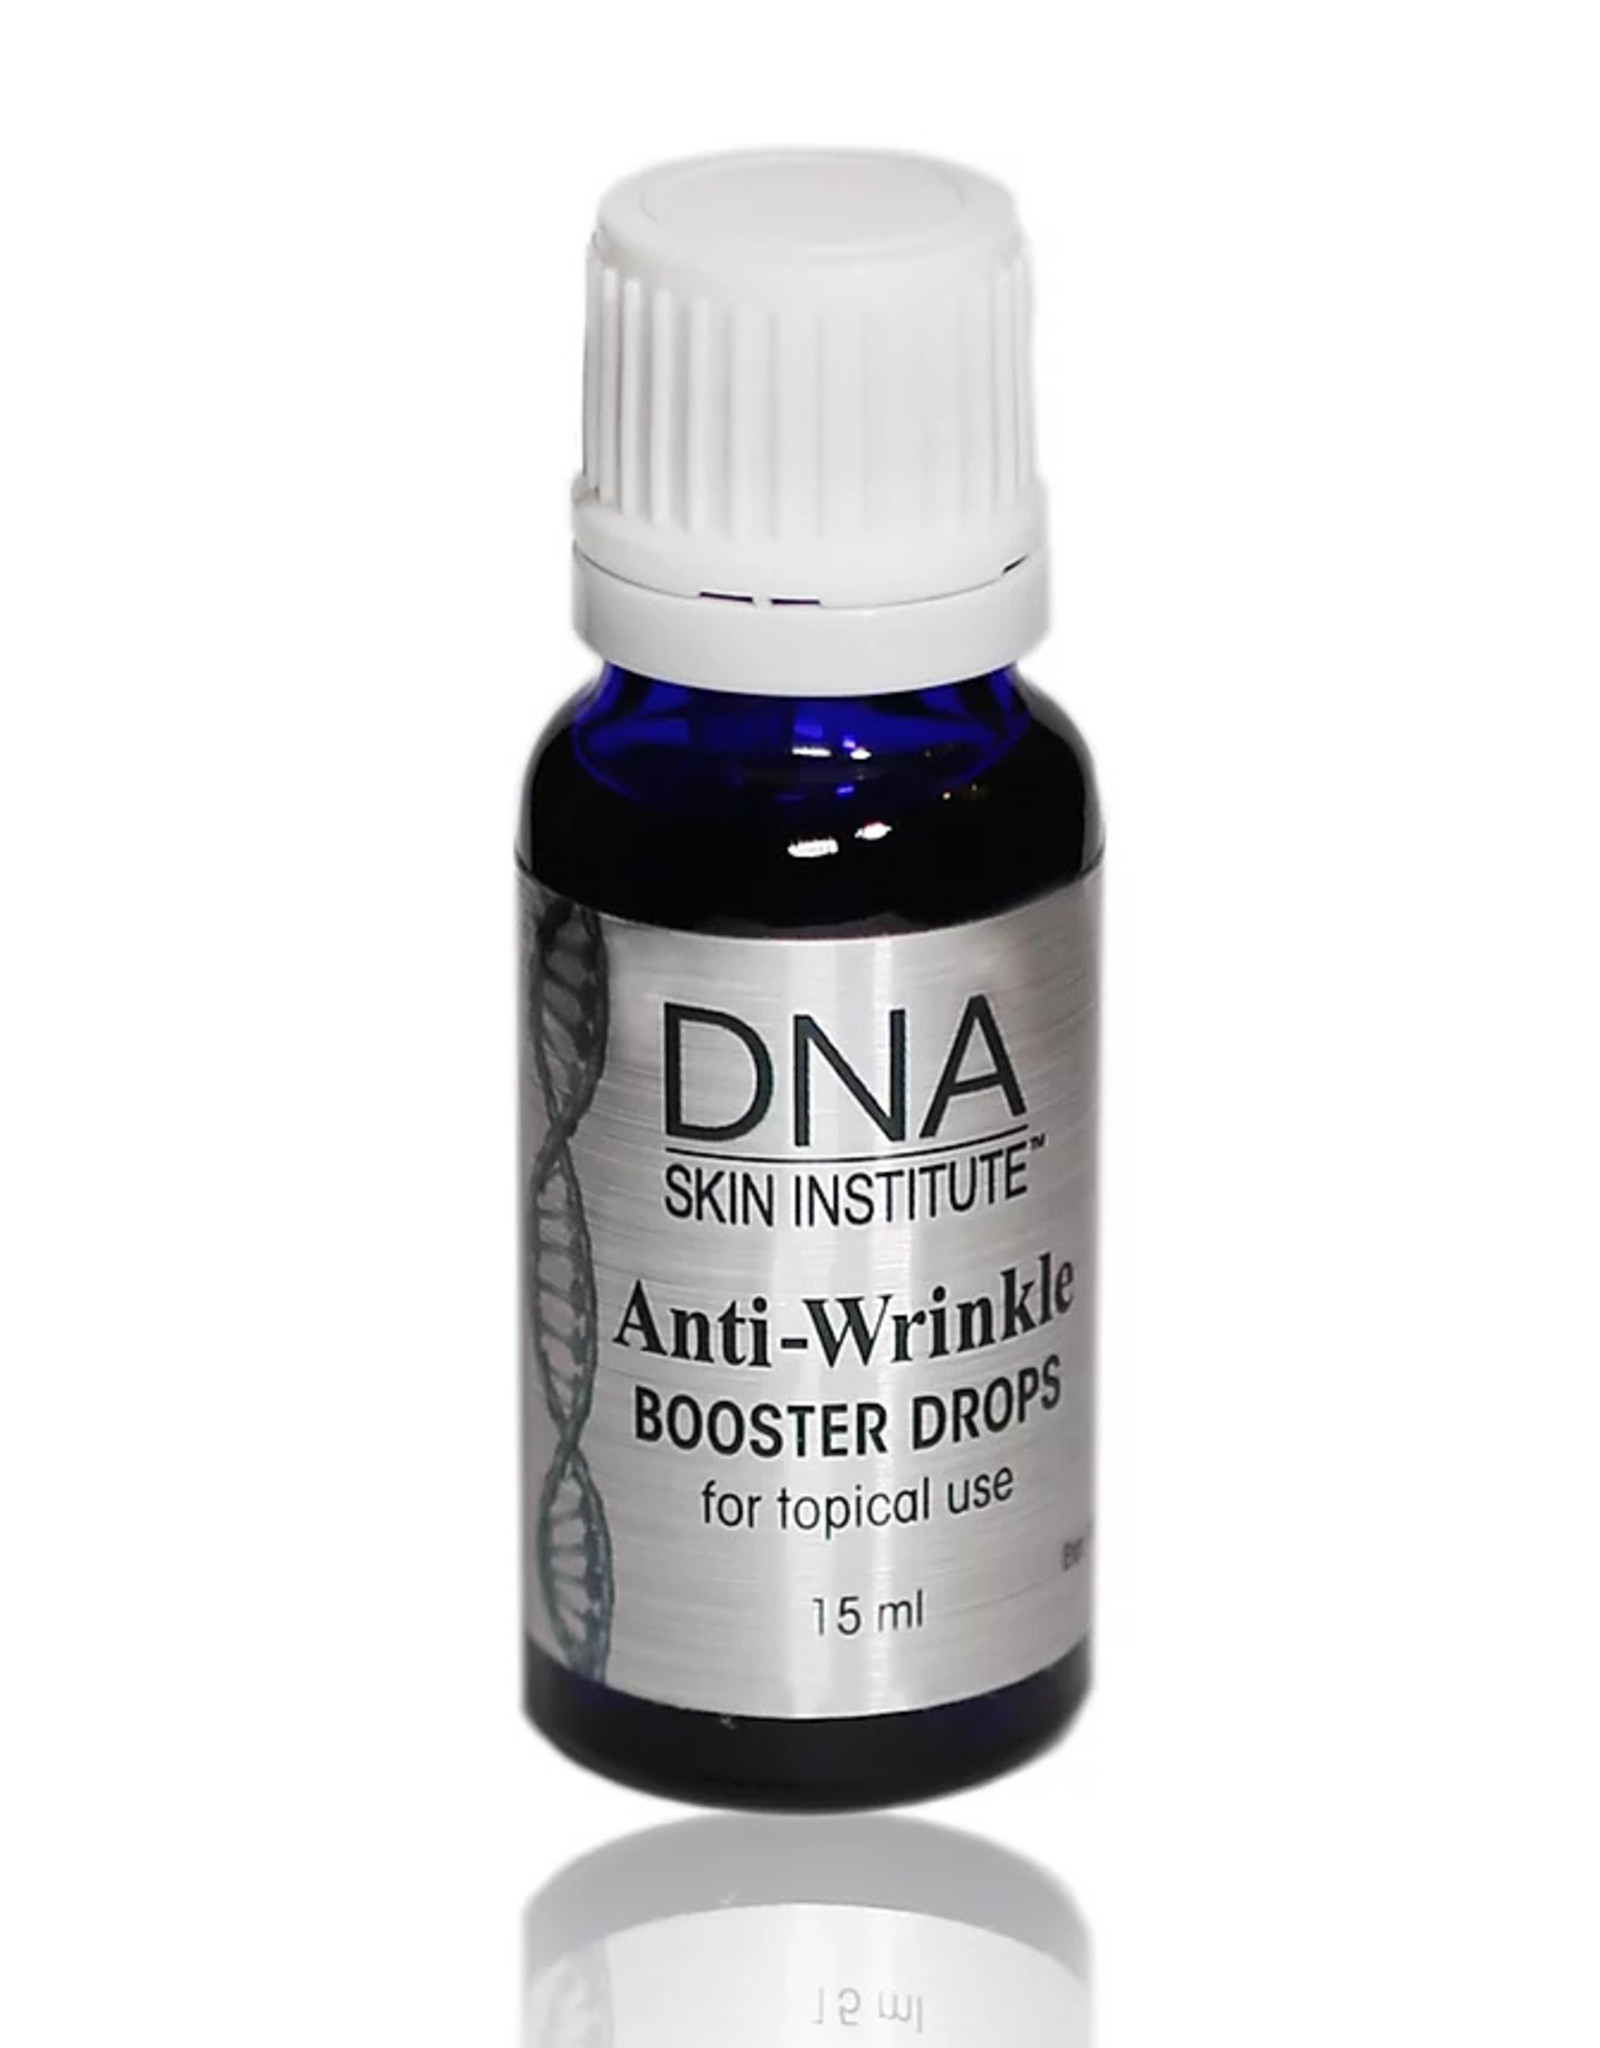 DNA Skin Institute Anti-Wrinkle Booster Drops